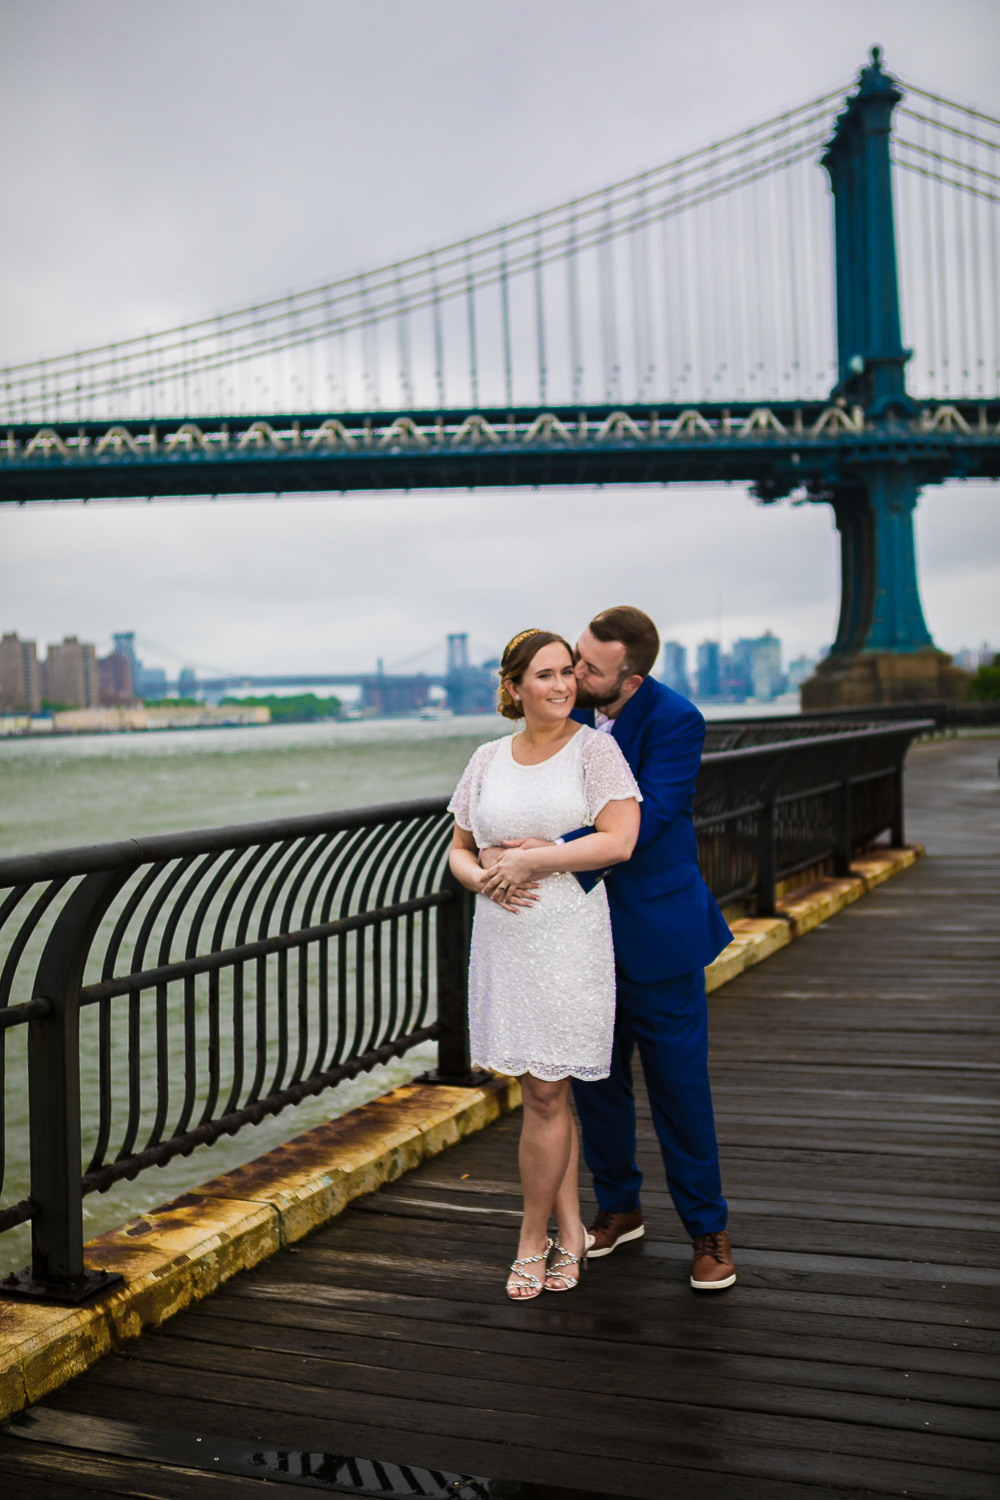 Bride and groom embracing. New York Bride in a short wedding dress and groom in a blue suit pose together for outdoor wedding photos in New York City. | Intimate Wedding at the Malthouse in Manhattan, New York City.